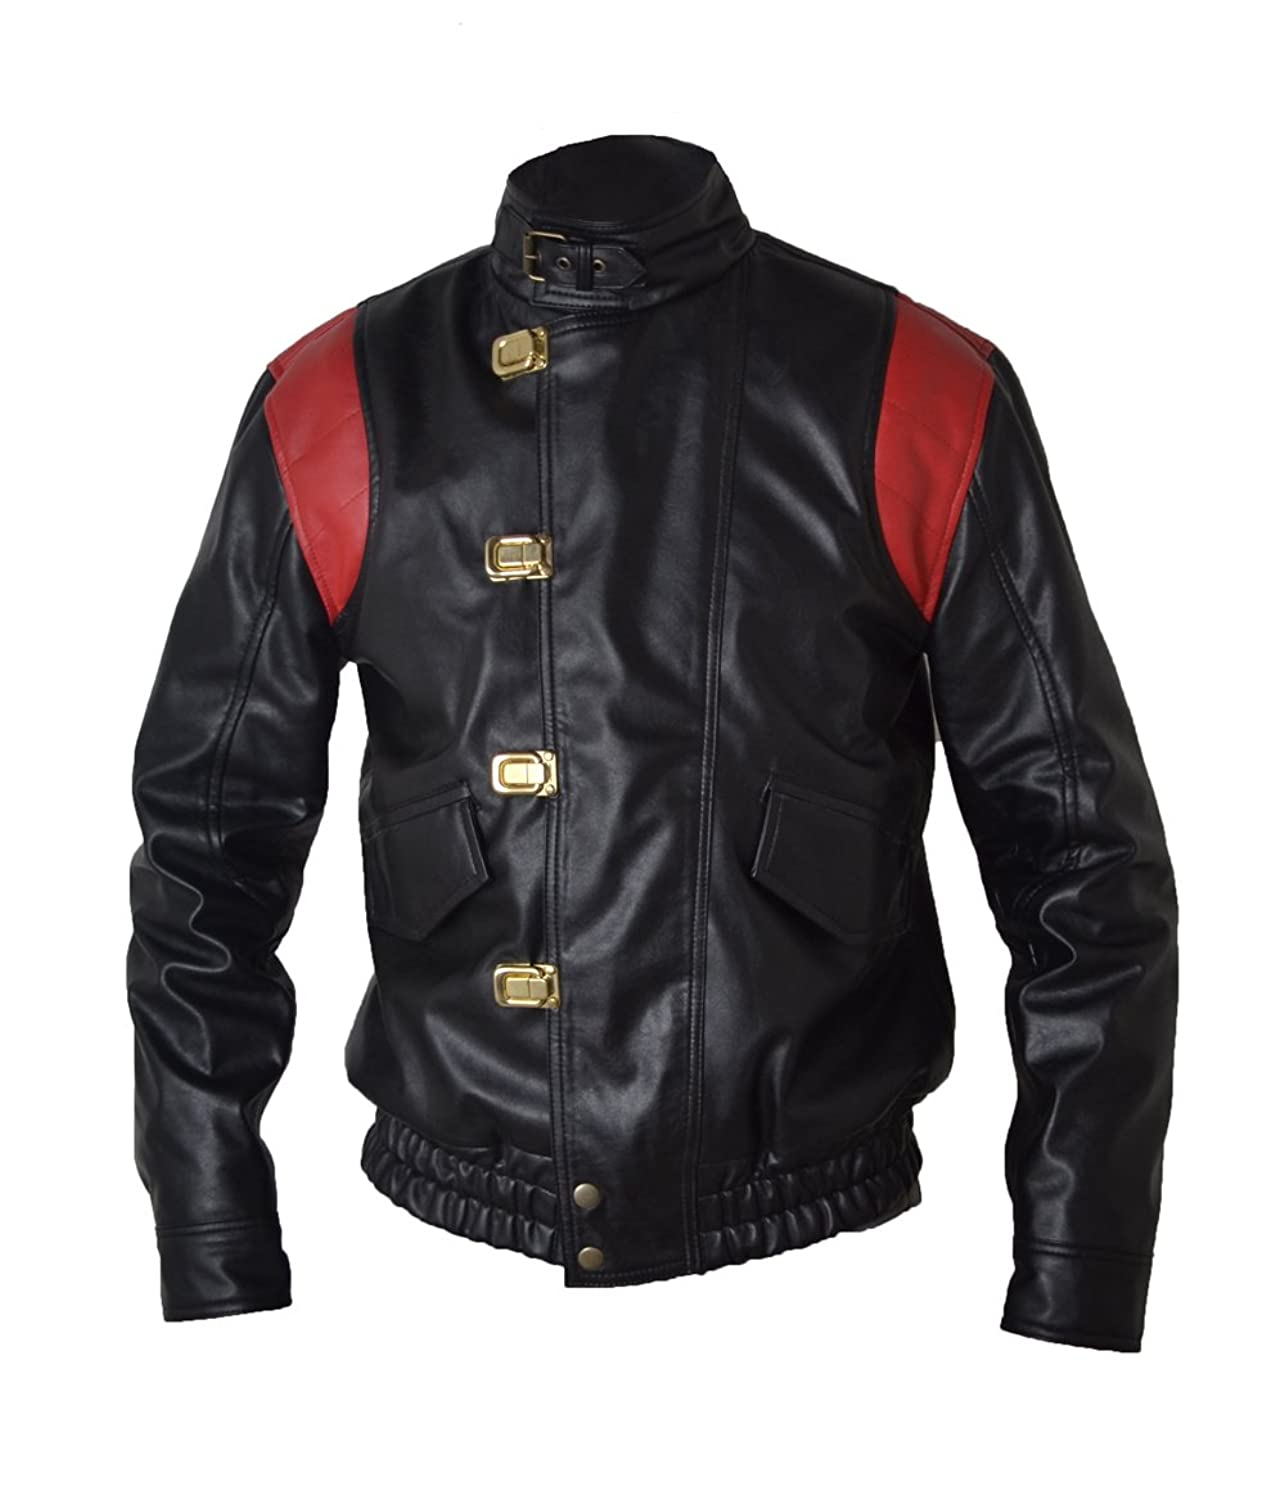 Akira Manga V4 Black with Red Stripes Real Sheep Leather Jacket With Capsule & Wordings